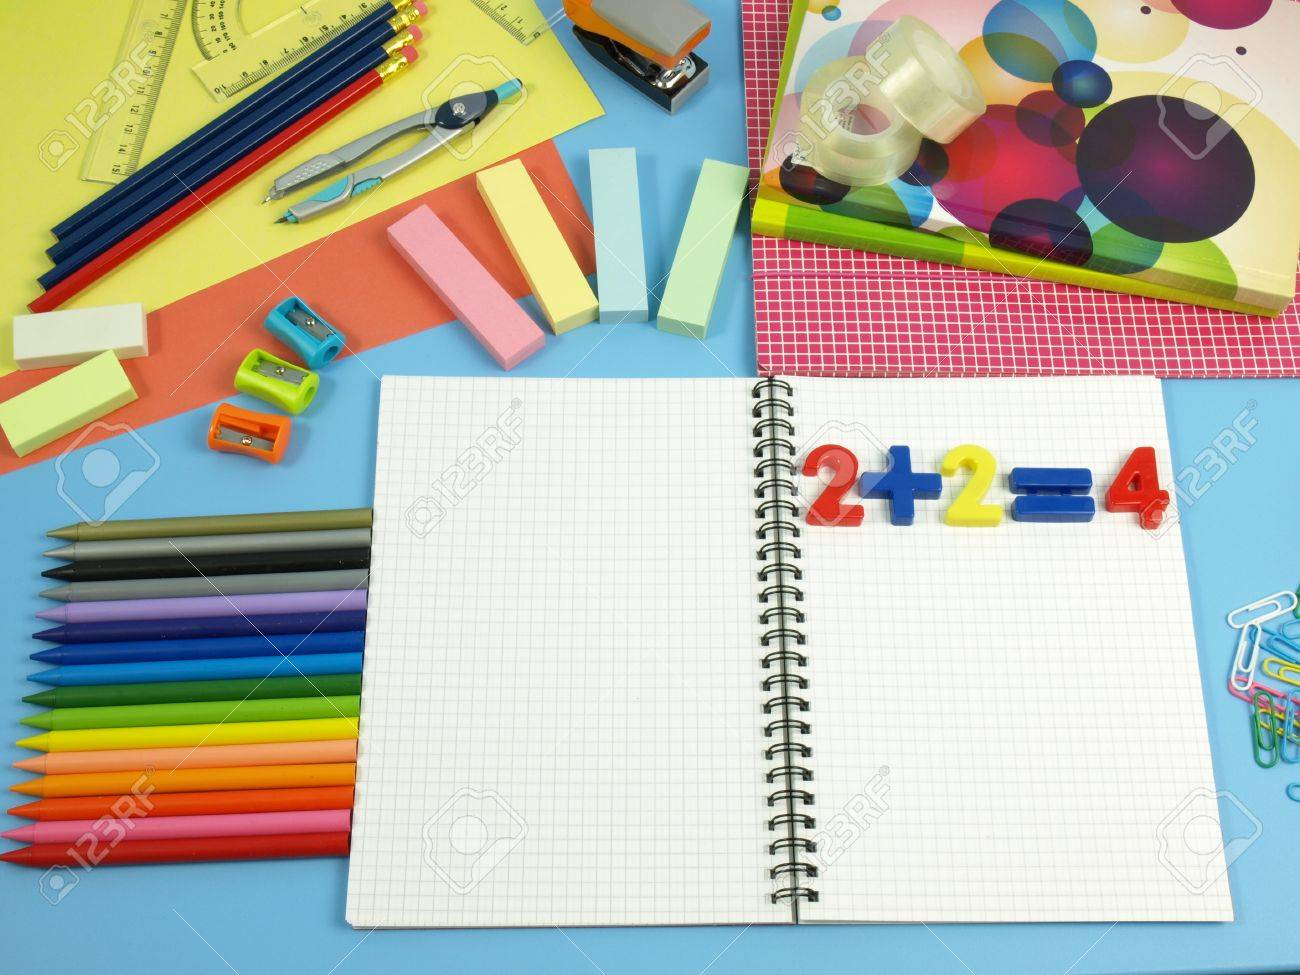 Colorful school equipment on a blue desk Stock Photo - 14600930